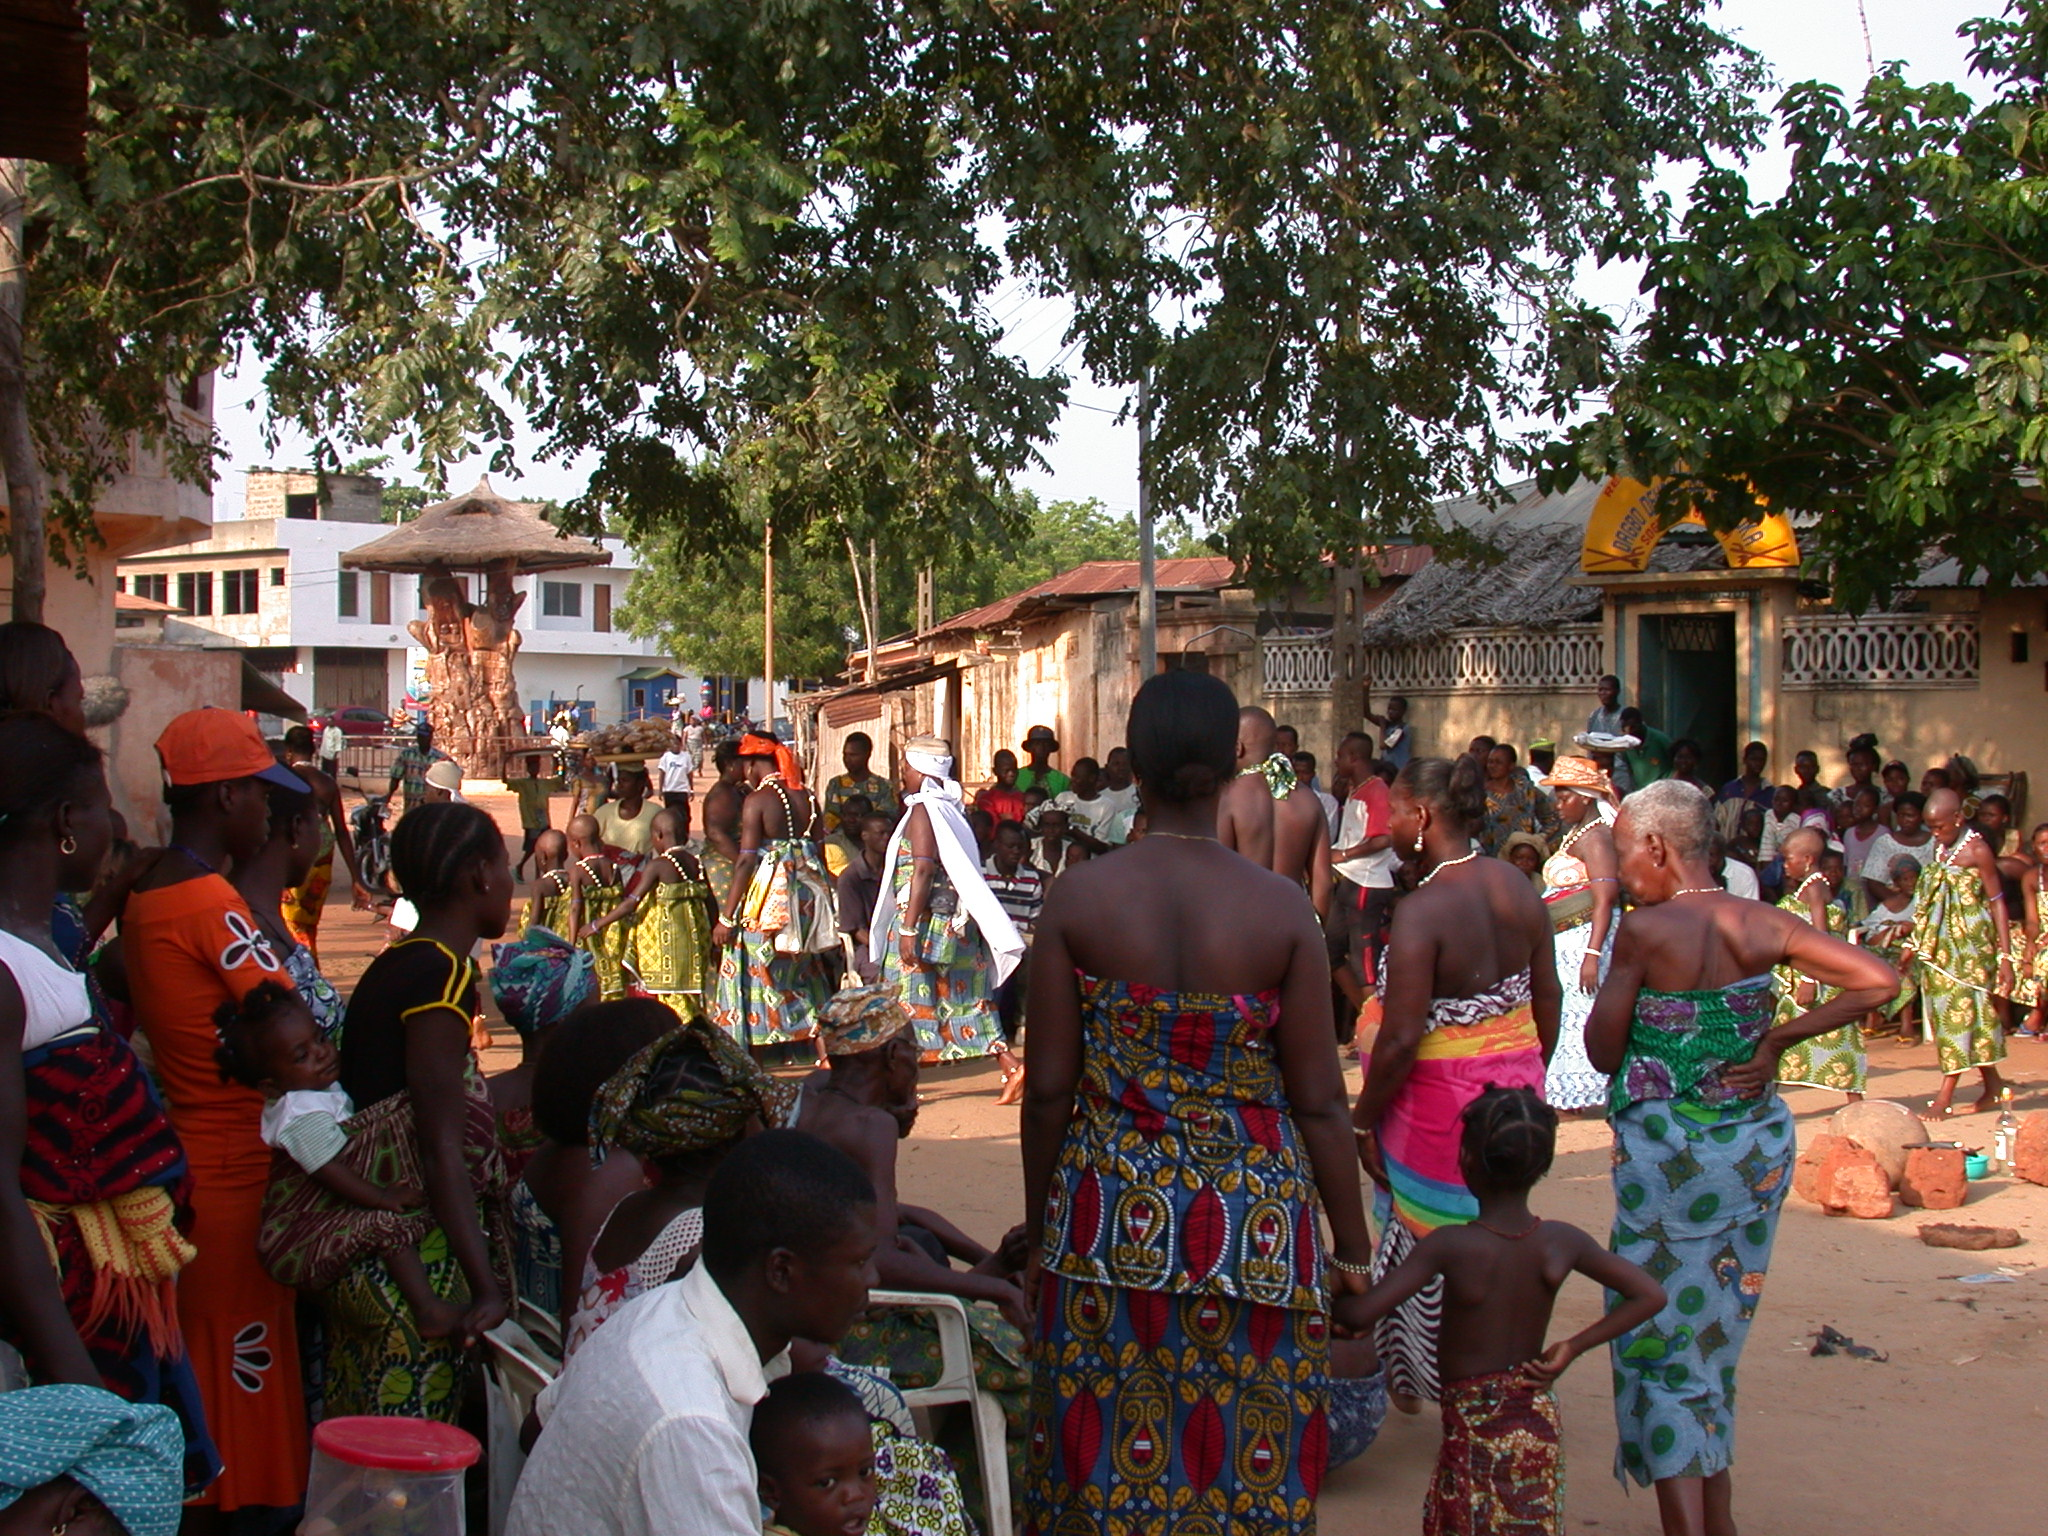 Crowd Gathering for Vodun Ritual, Ouidah, Benin